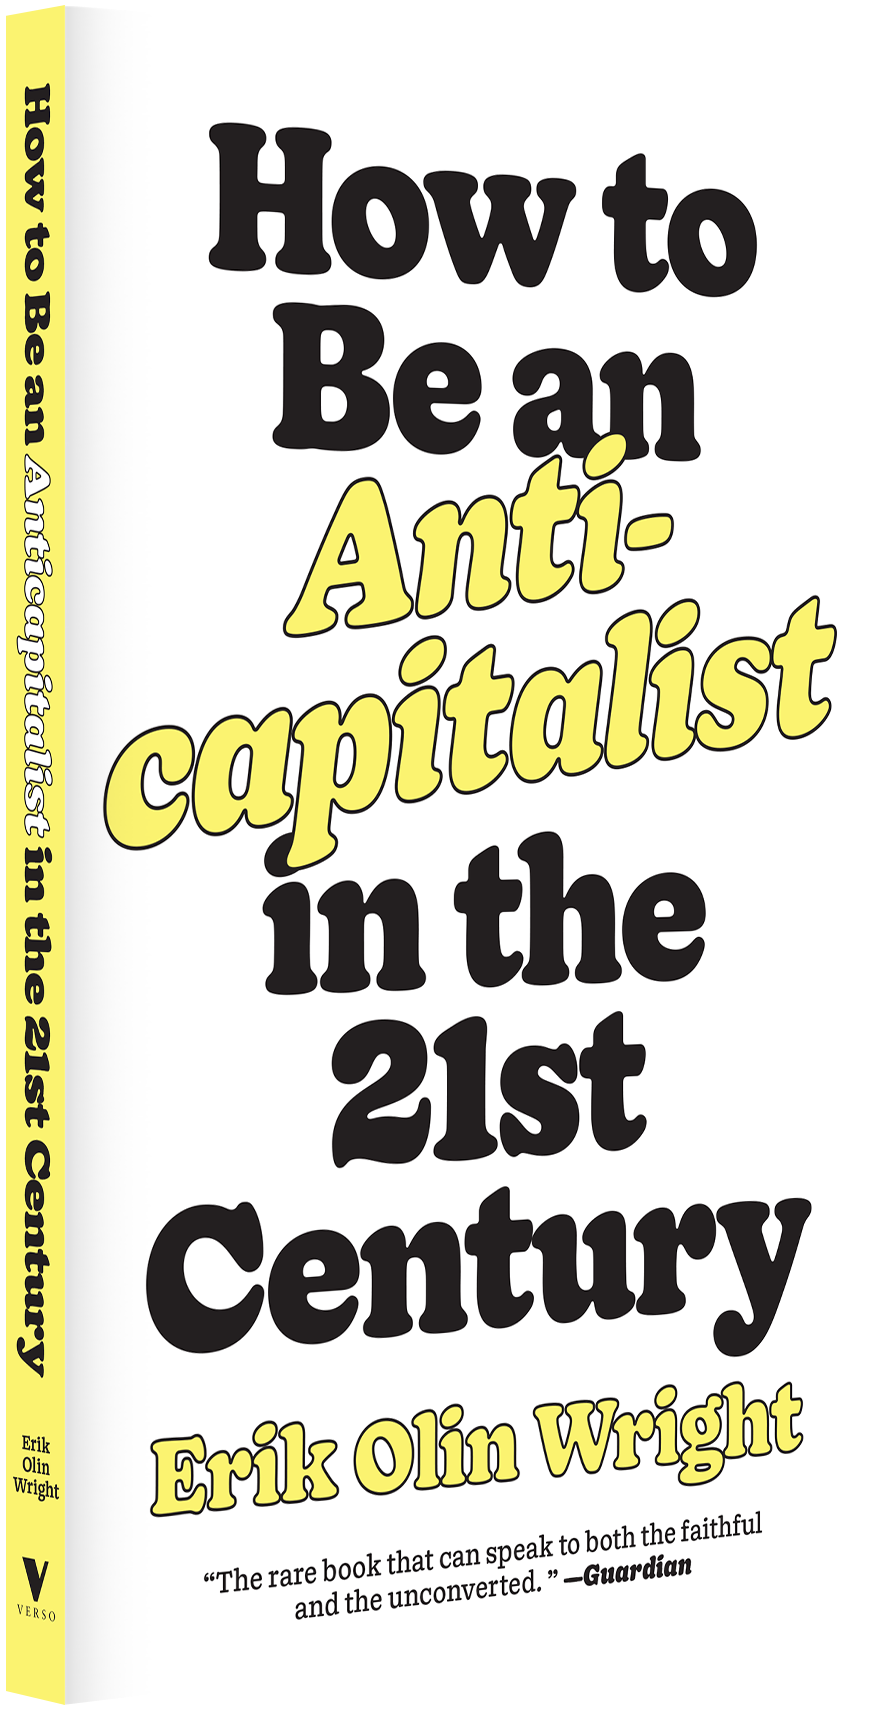 How-to-be-an-anticapitalist-in-the-twenty-first-century-pb